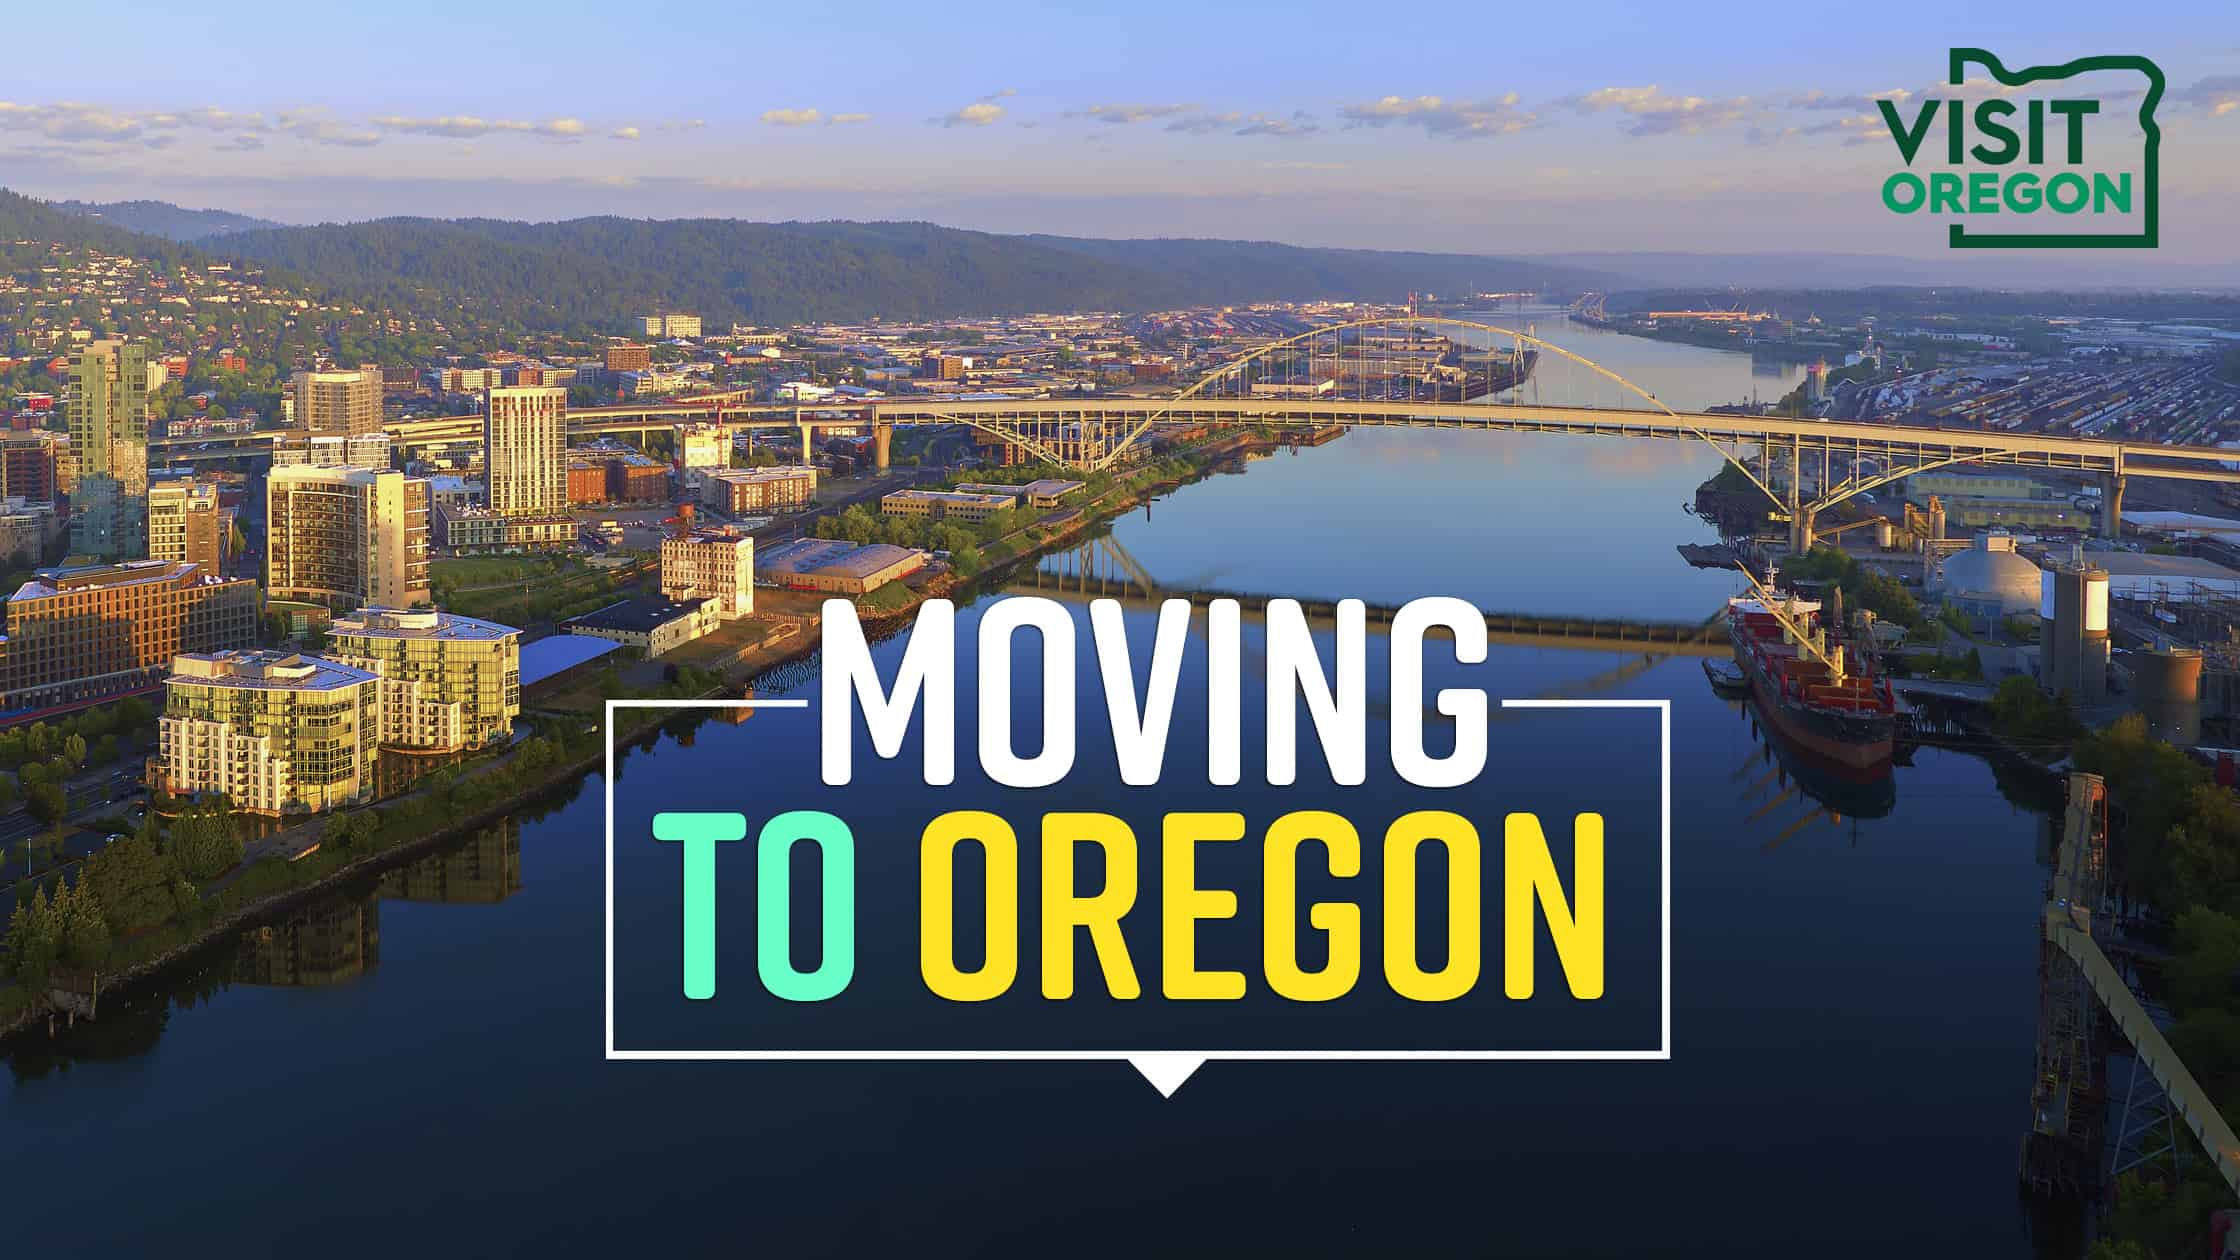 Move To Oregon